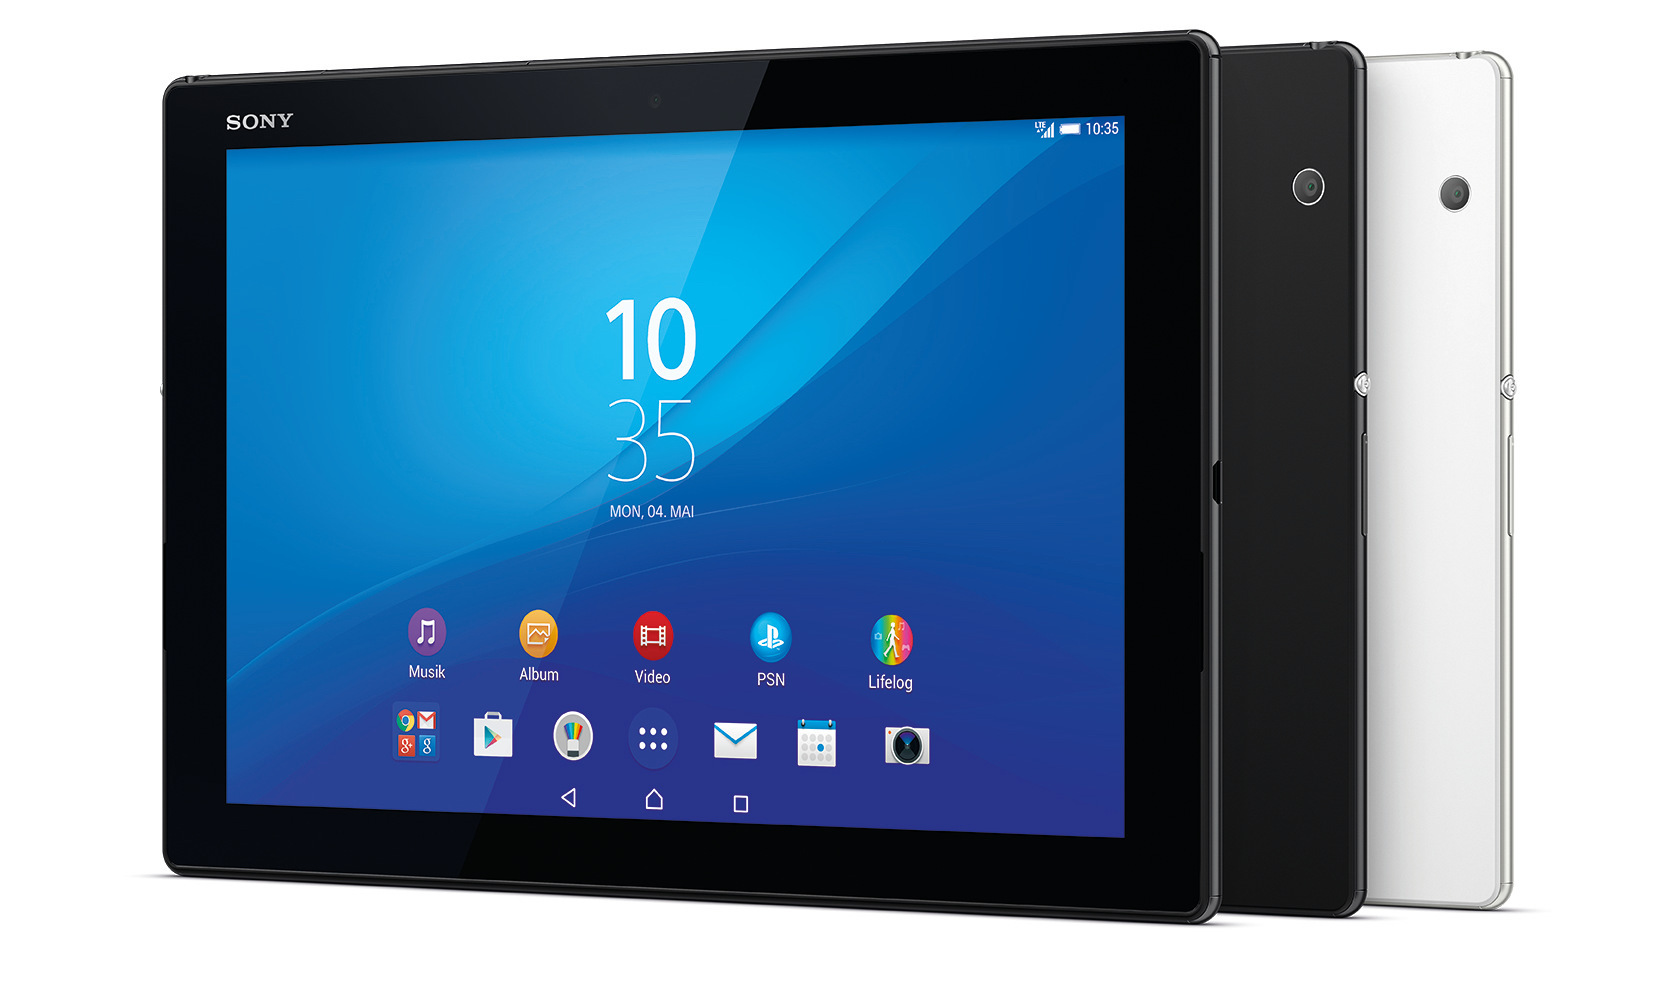 mwc sony xperia z4 tablet wasserdicht mit achtkern prozessor heise online. Black Bedroom Furniture Sets. Home Design Ideas